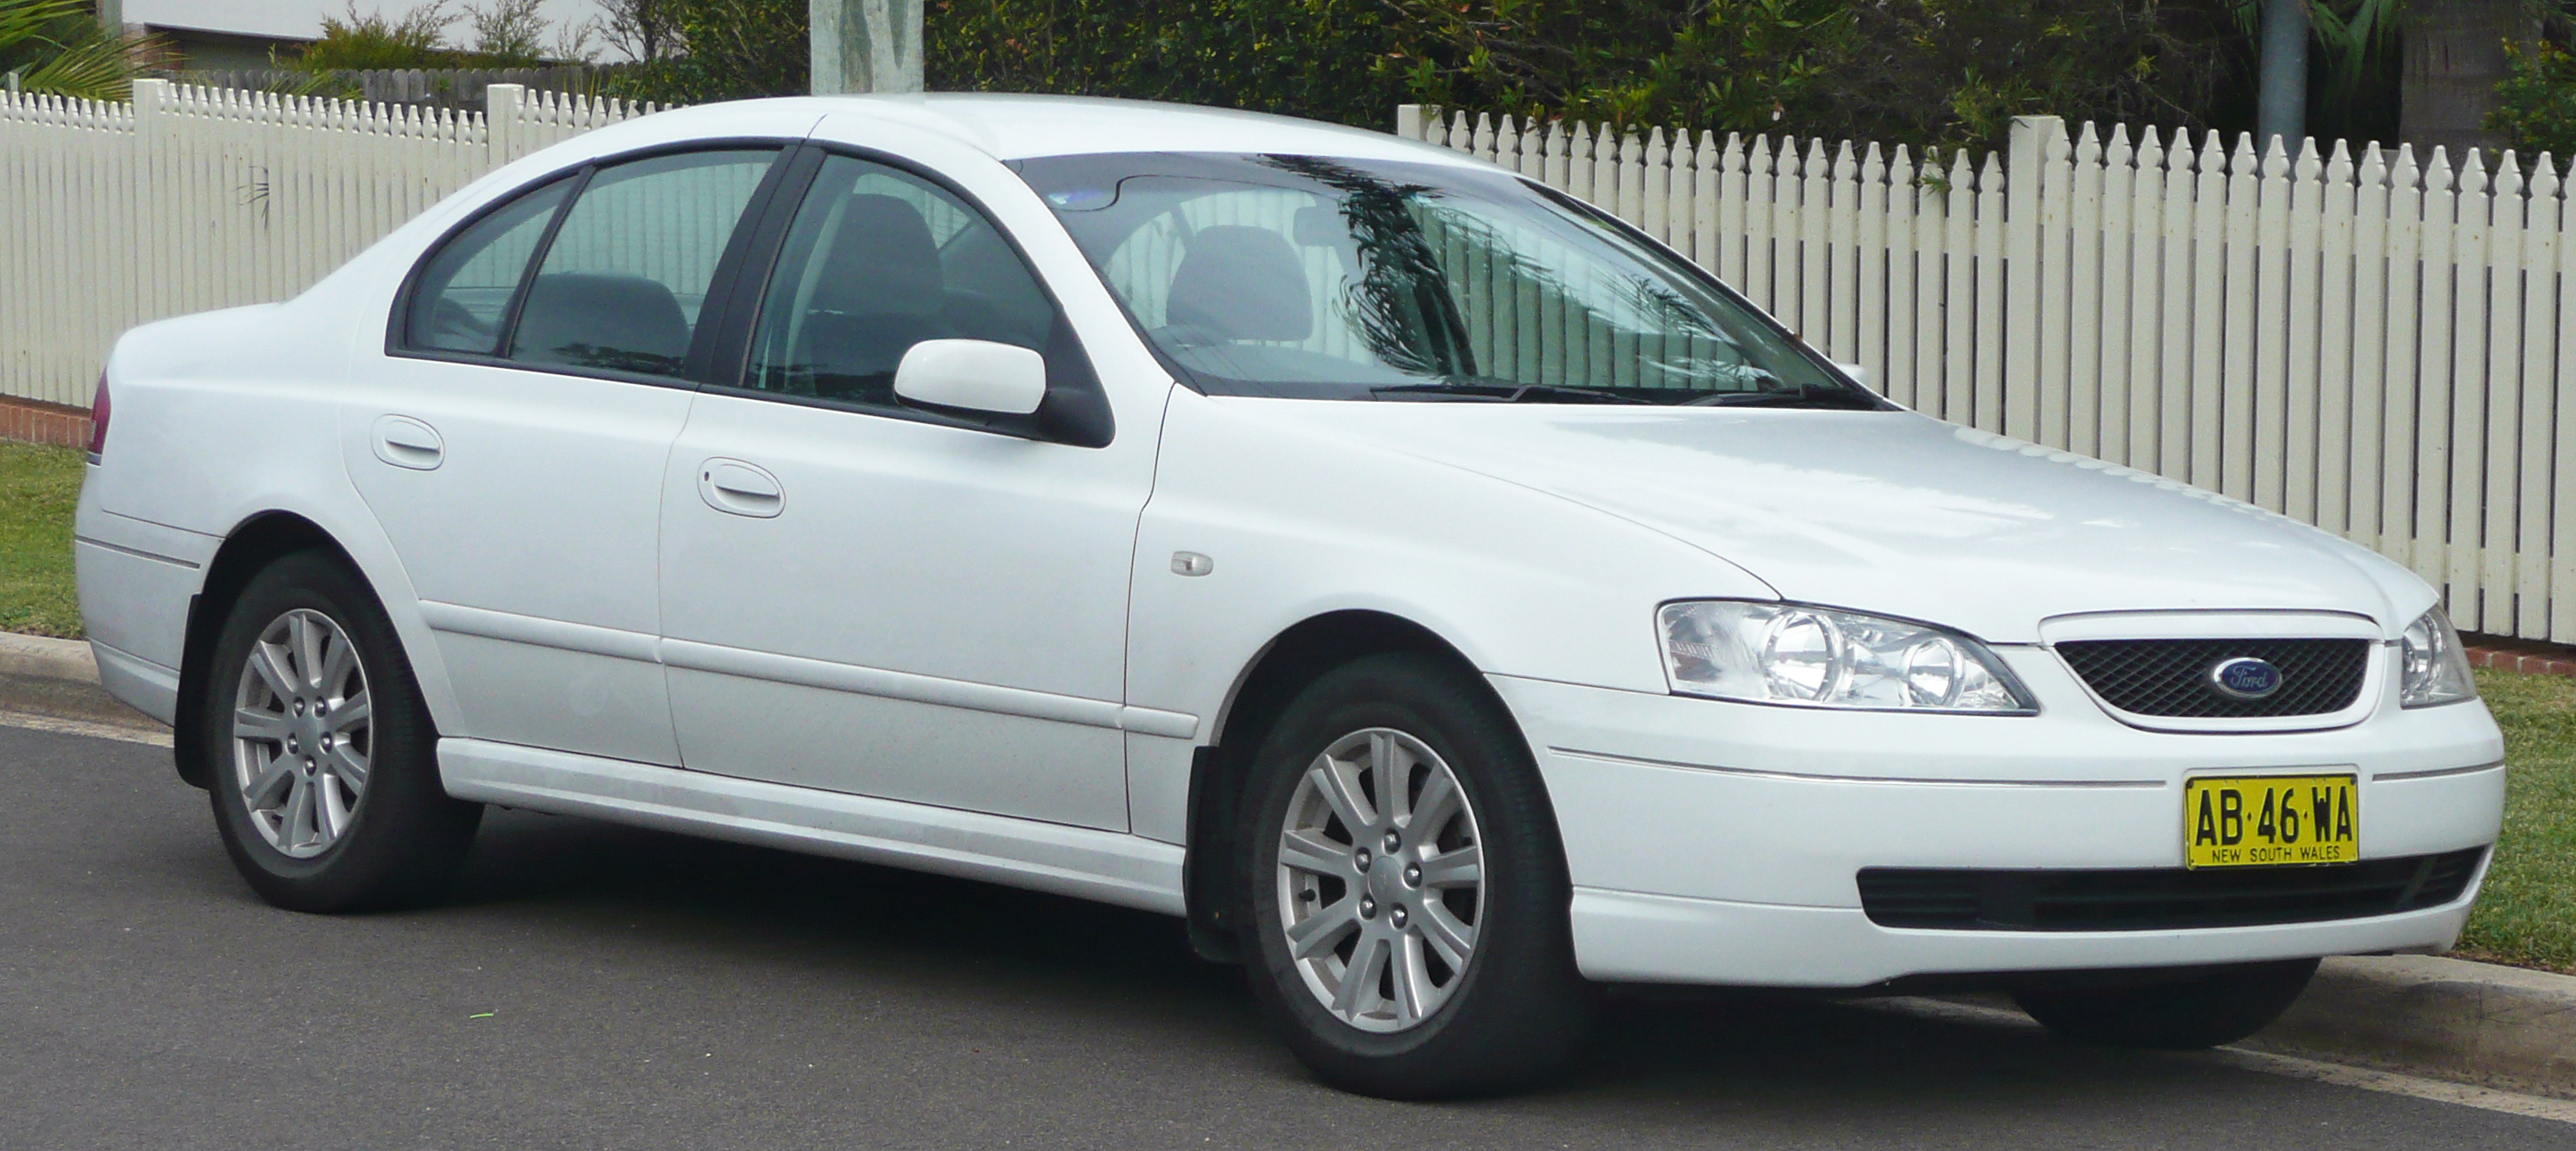 Ford Falcon Ba Wikipedia 2009 Kia Rio Engine Diagram